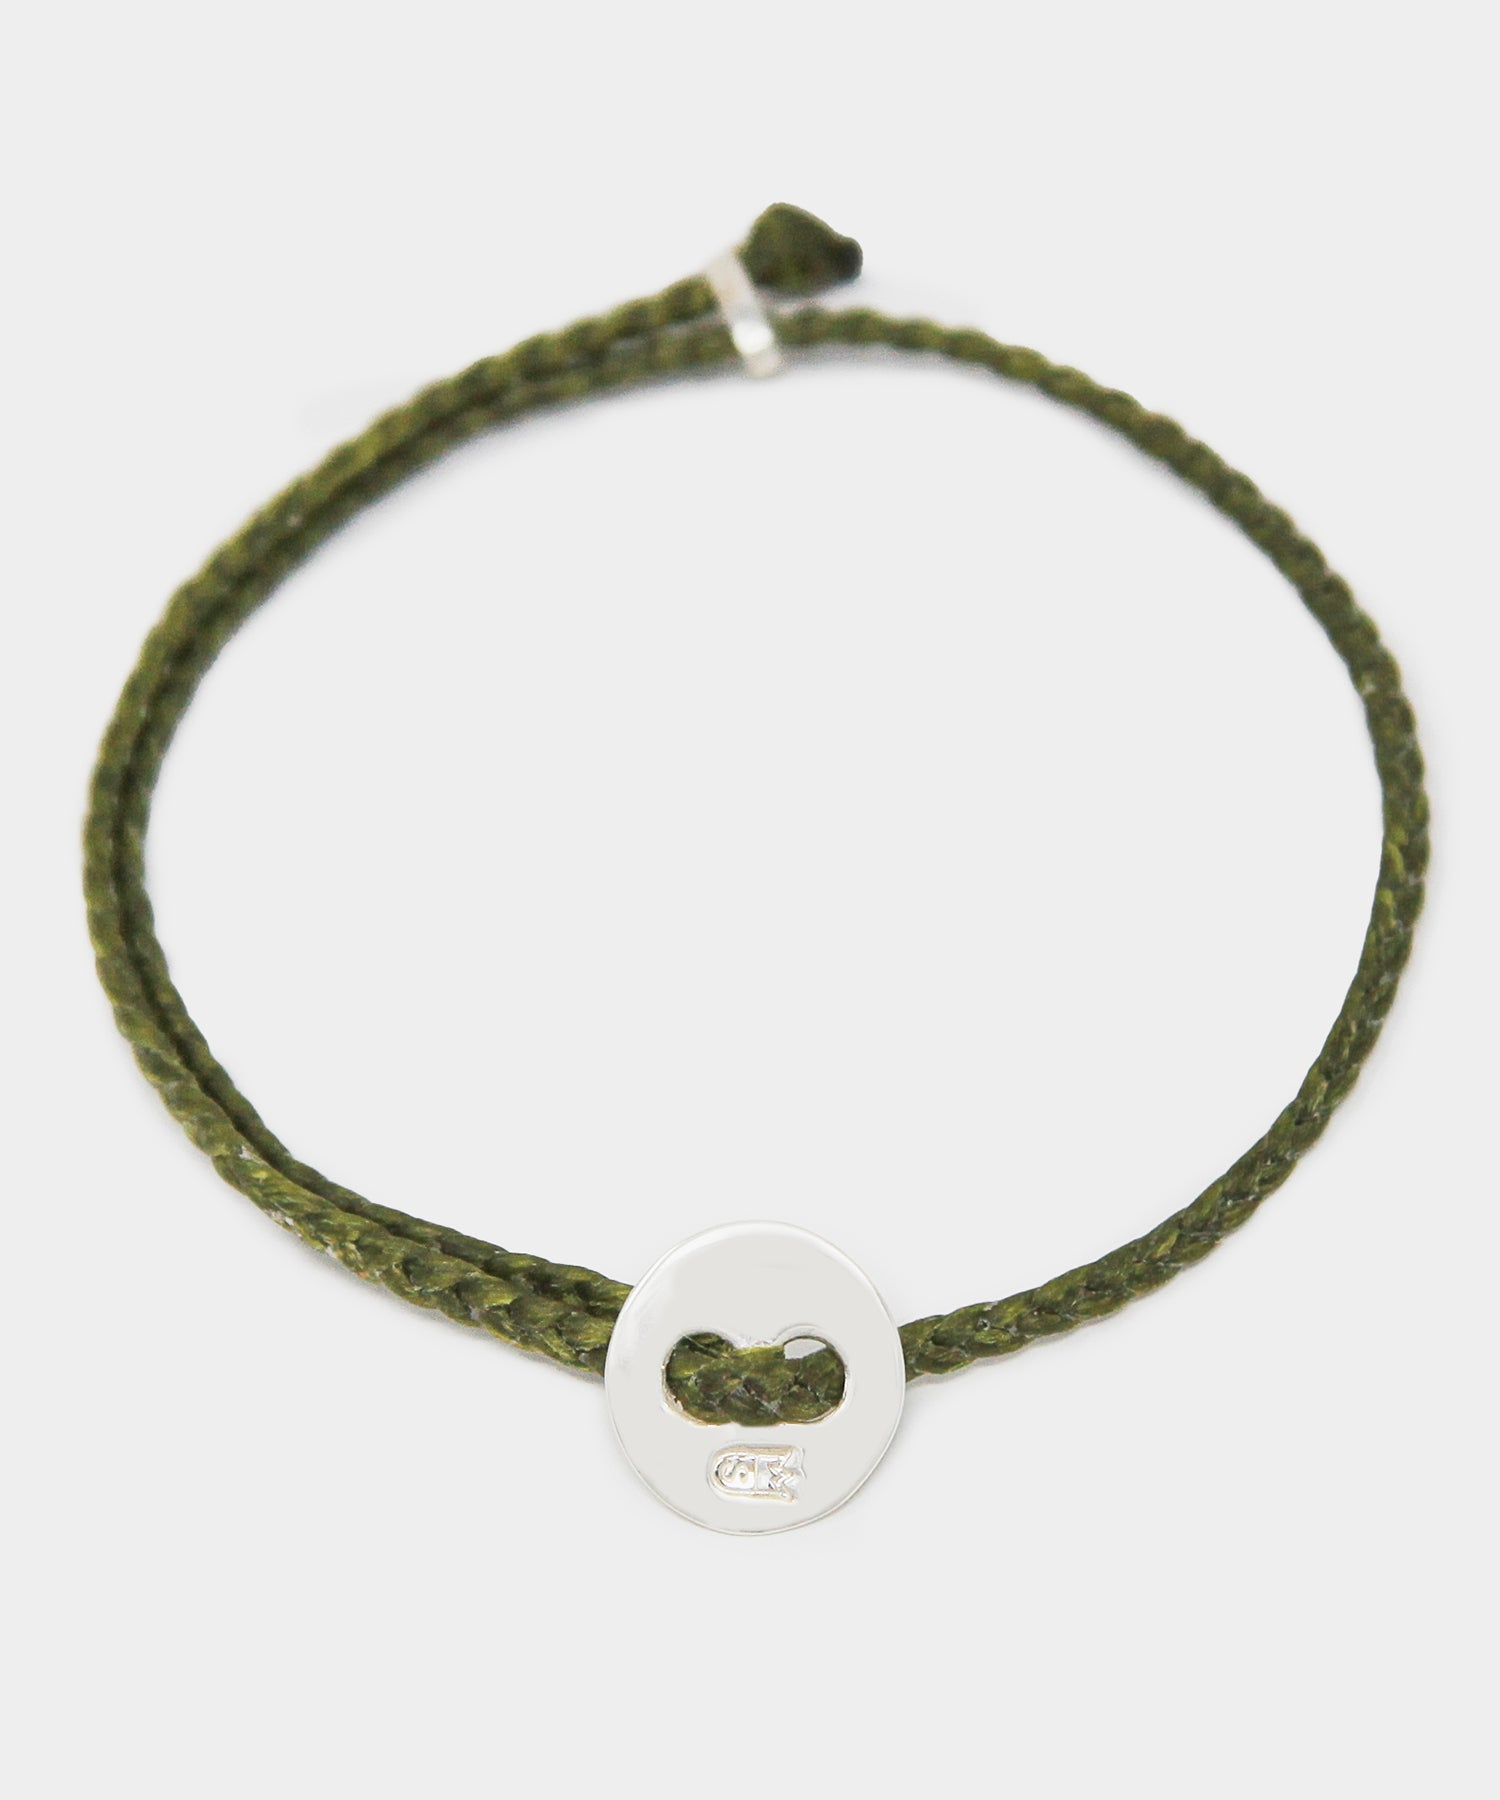 Scosha Signature 4MM Bracelet in Olive